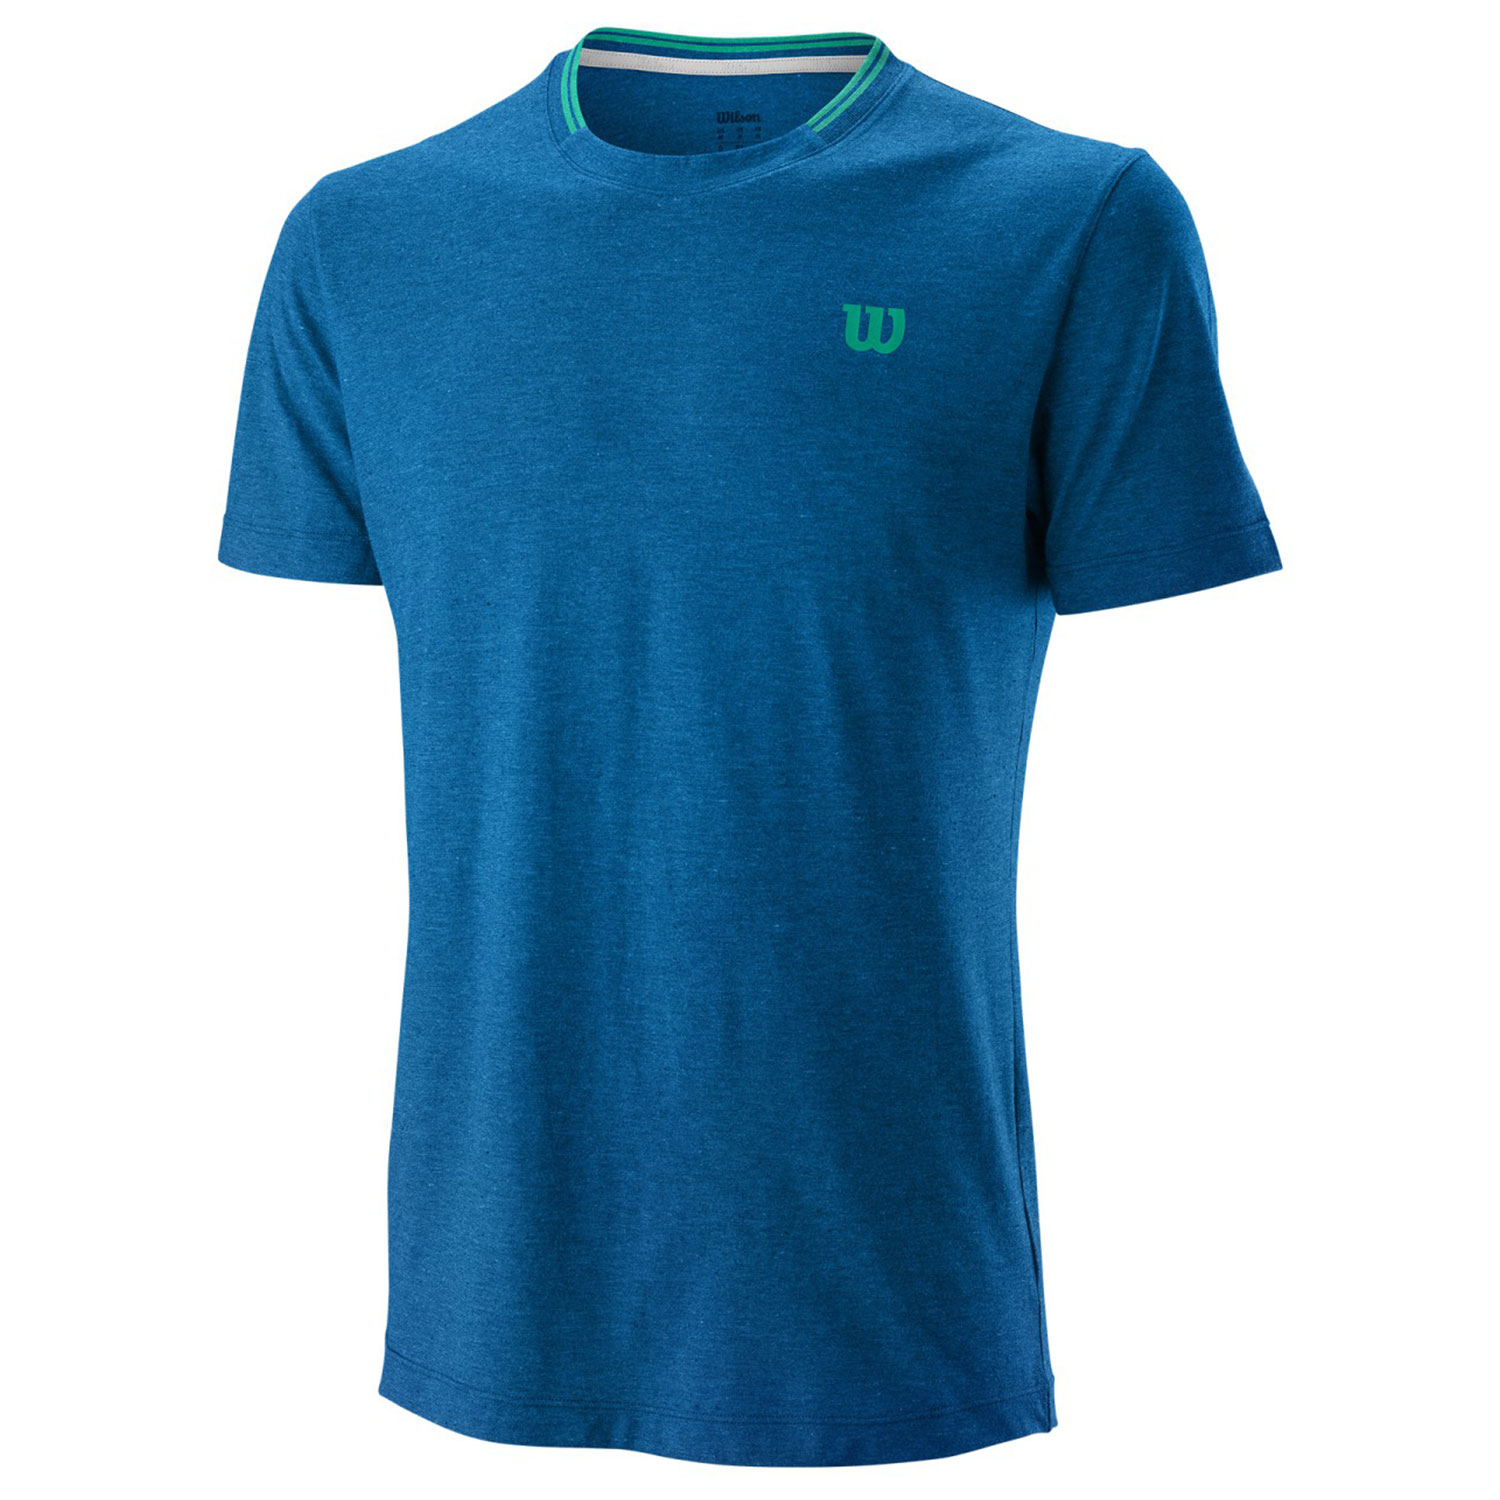 Wilson Competition Flecked Crew T-Shirt - Imperial Blue